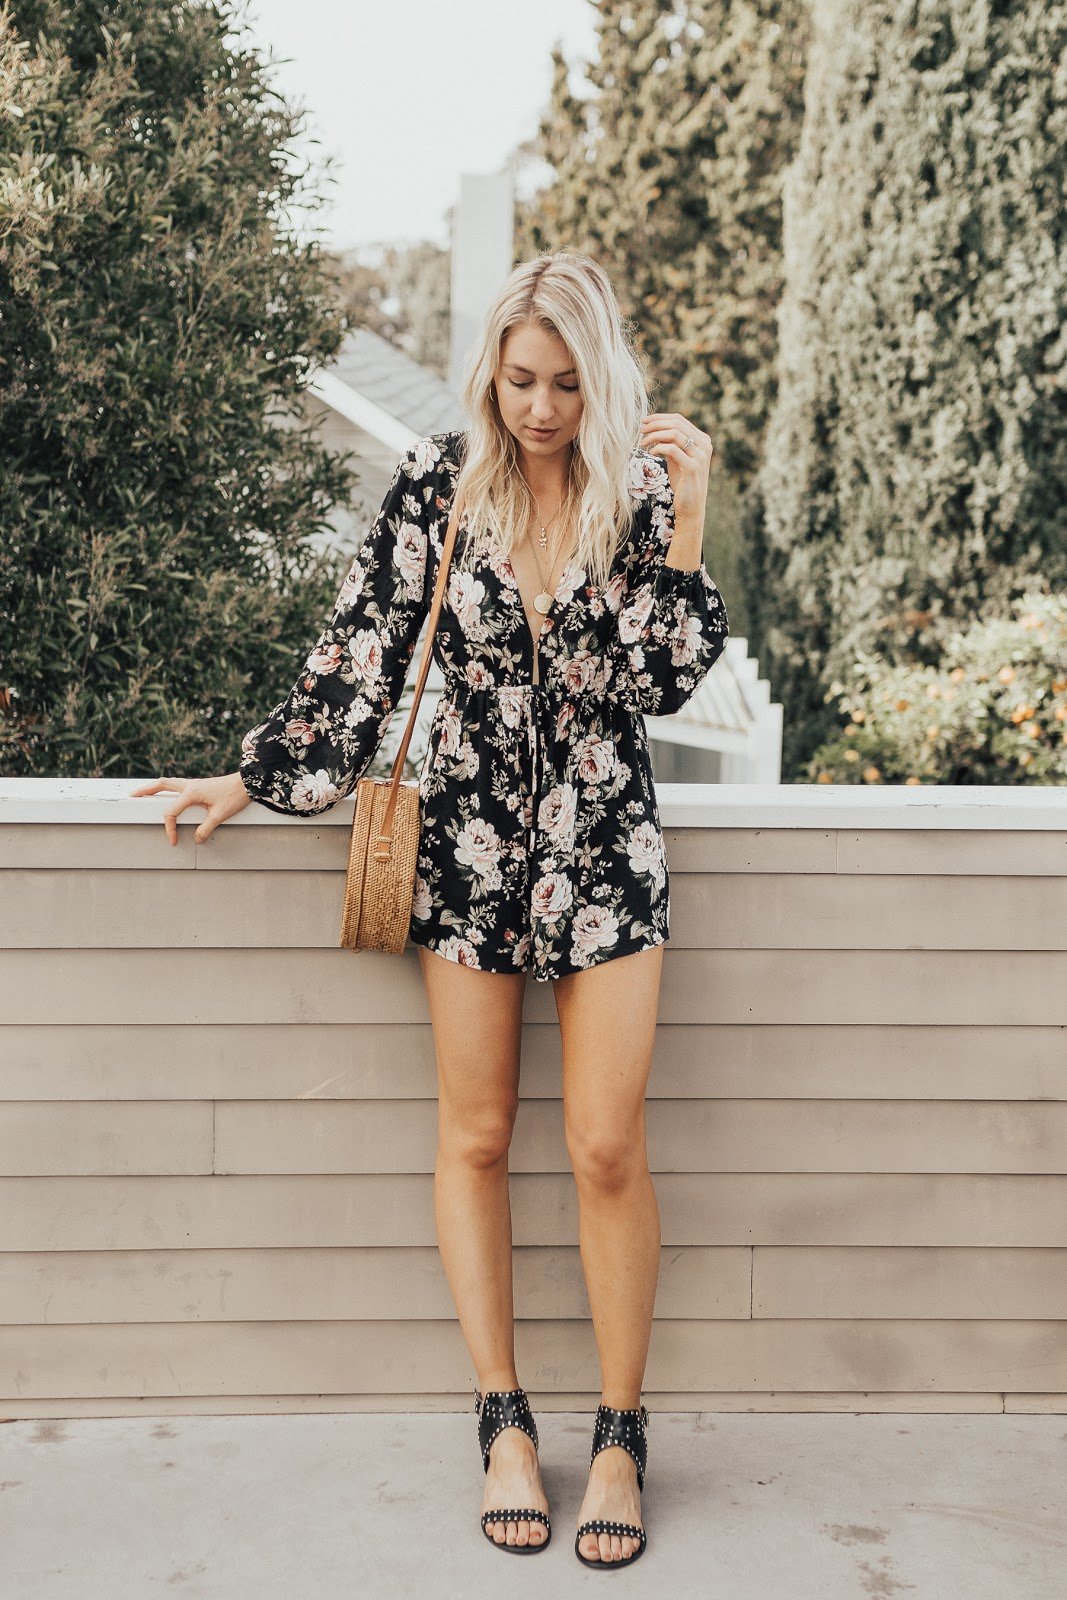 Cute floral romper for spring/summer | Love, Lenore